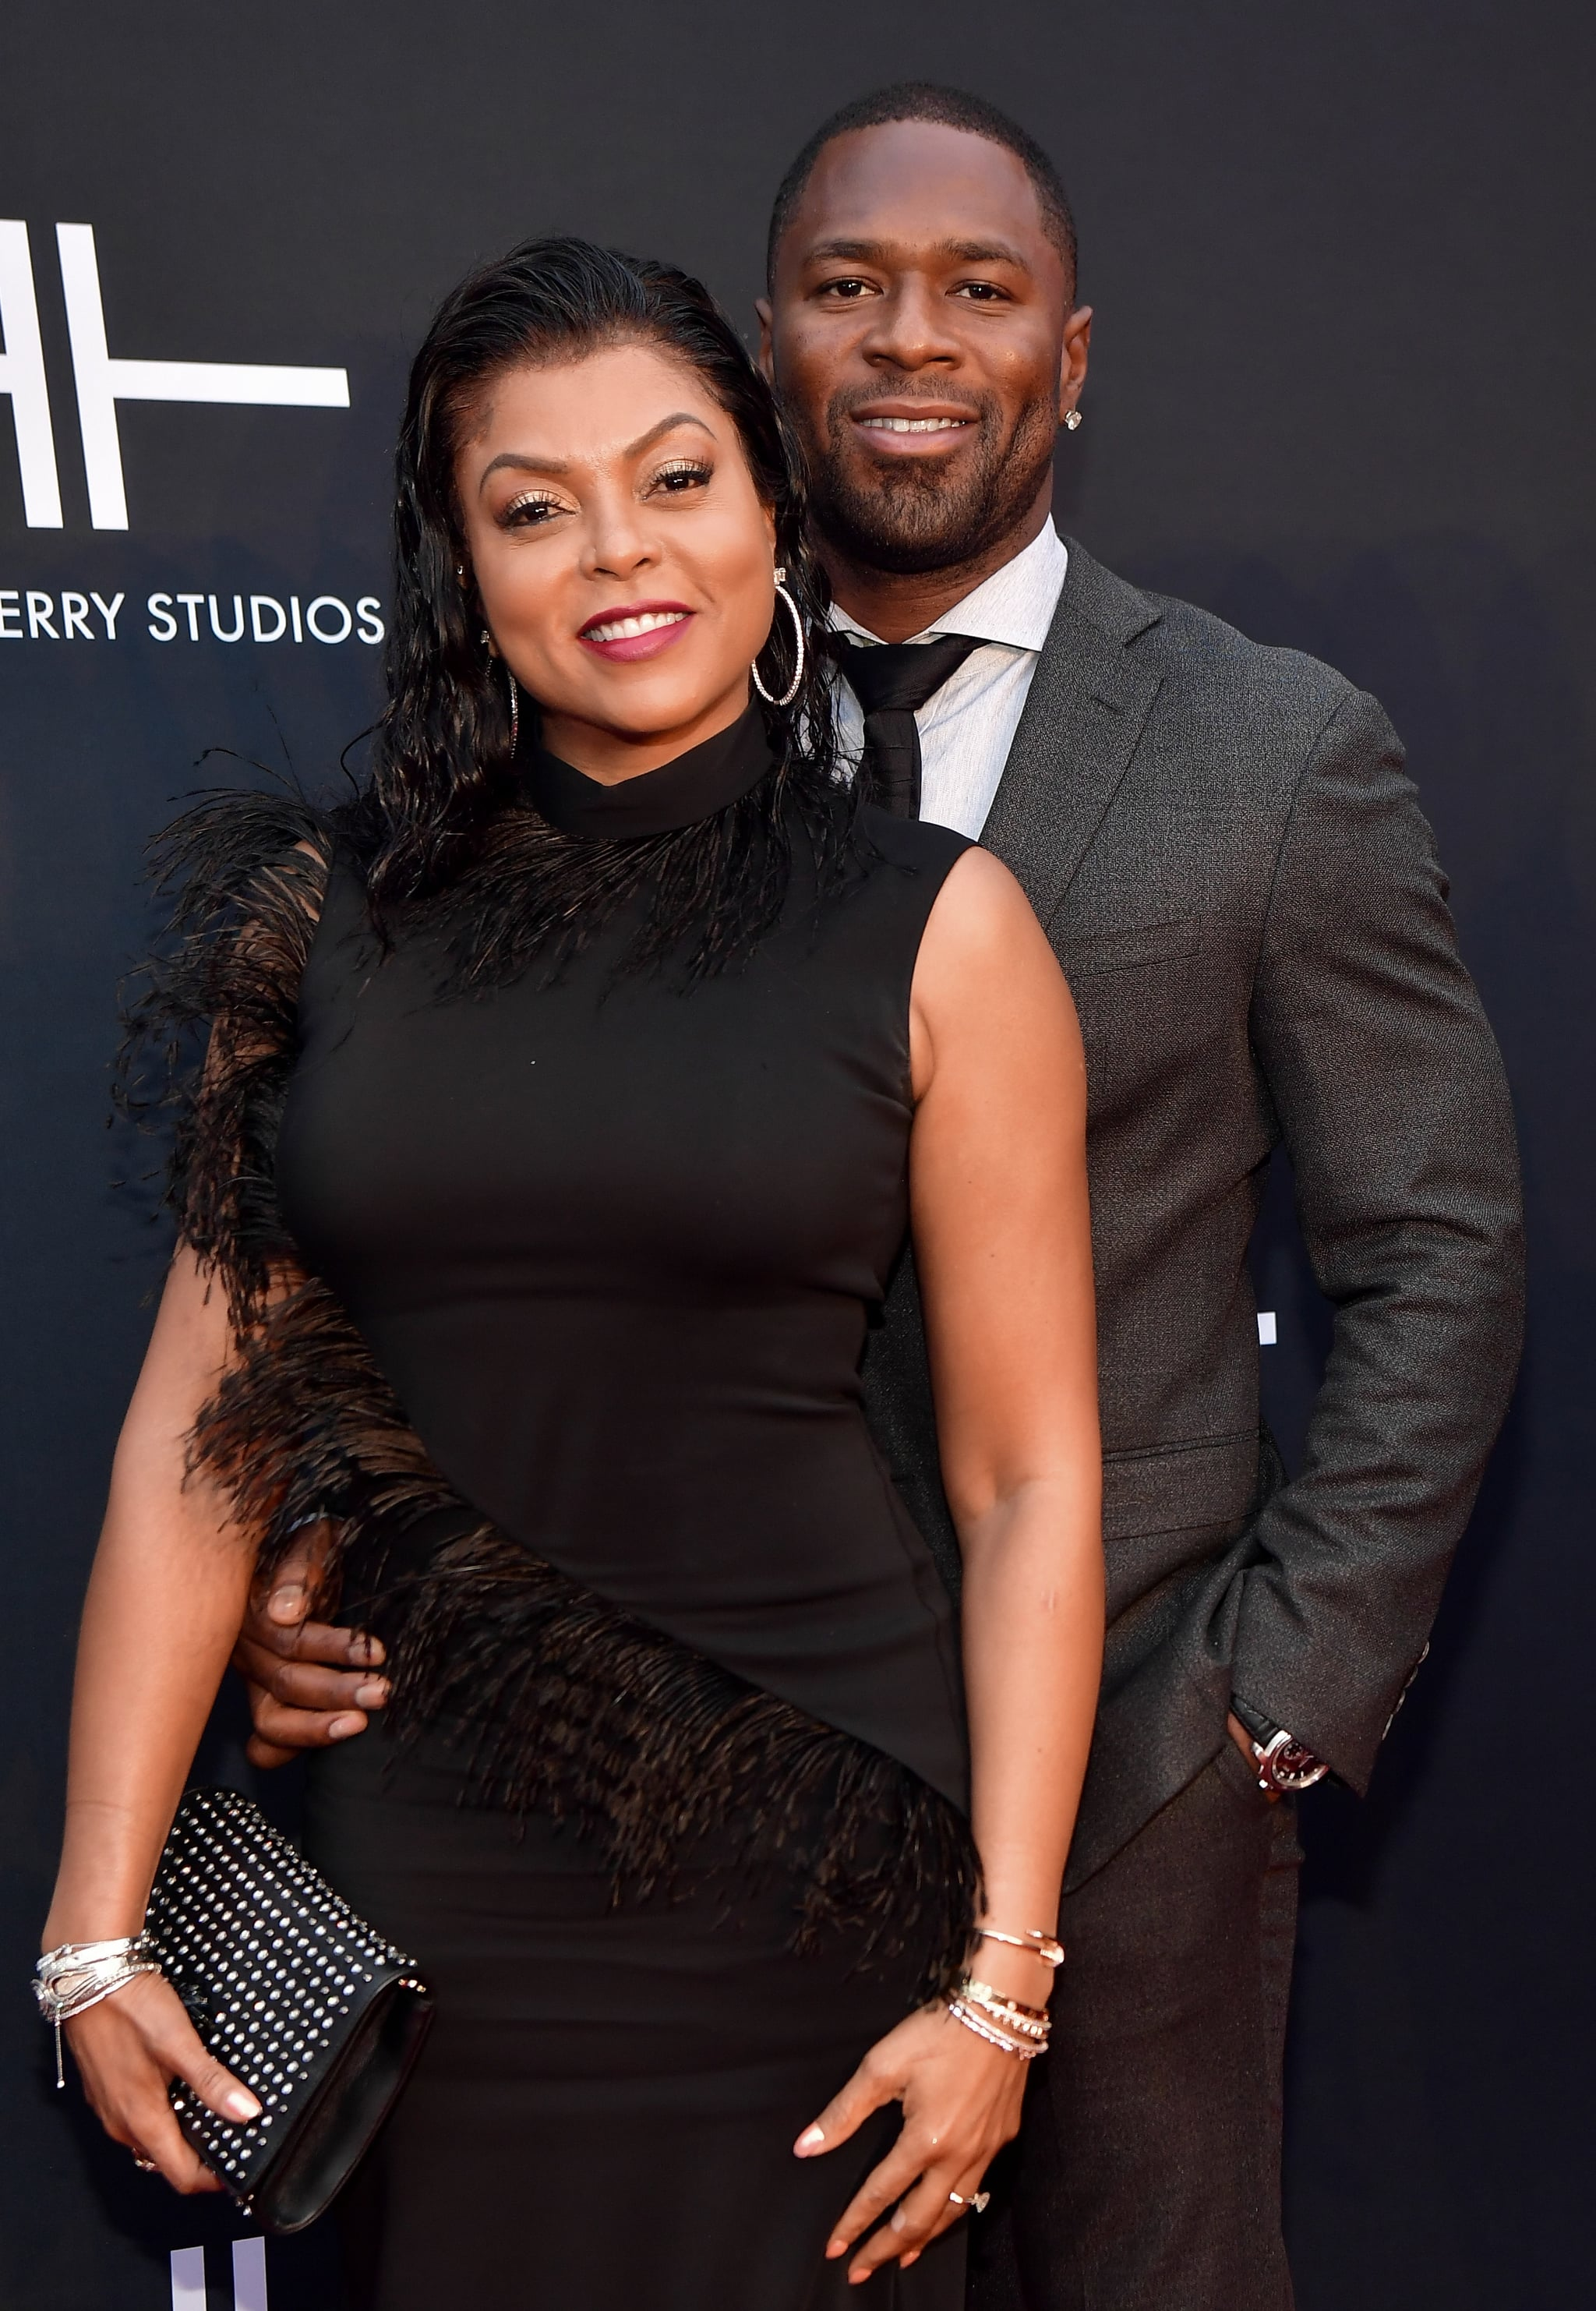 ATLANTA, GA - OCTOBER 05: Taraji Henson and Kelvin Hayden attend Tyler Perry Studios Grand Opening Gala - Arrivals at Tyler Perry Studios on October 5, 2019 in Atlanta, Georgia.(Photo by Prince Williams/Wireimage)